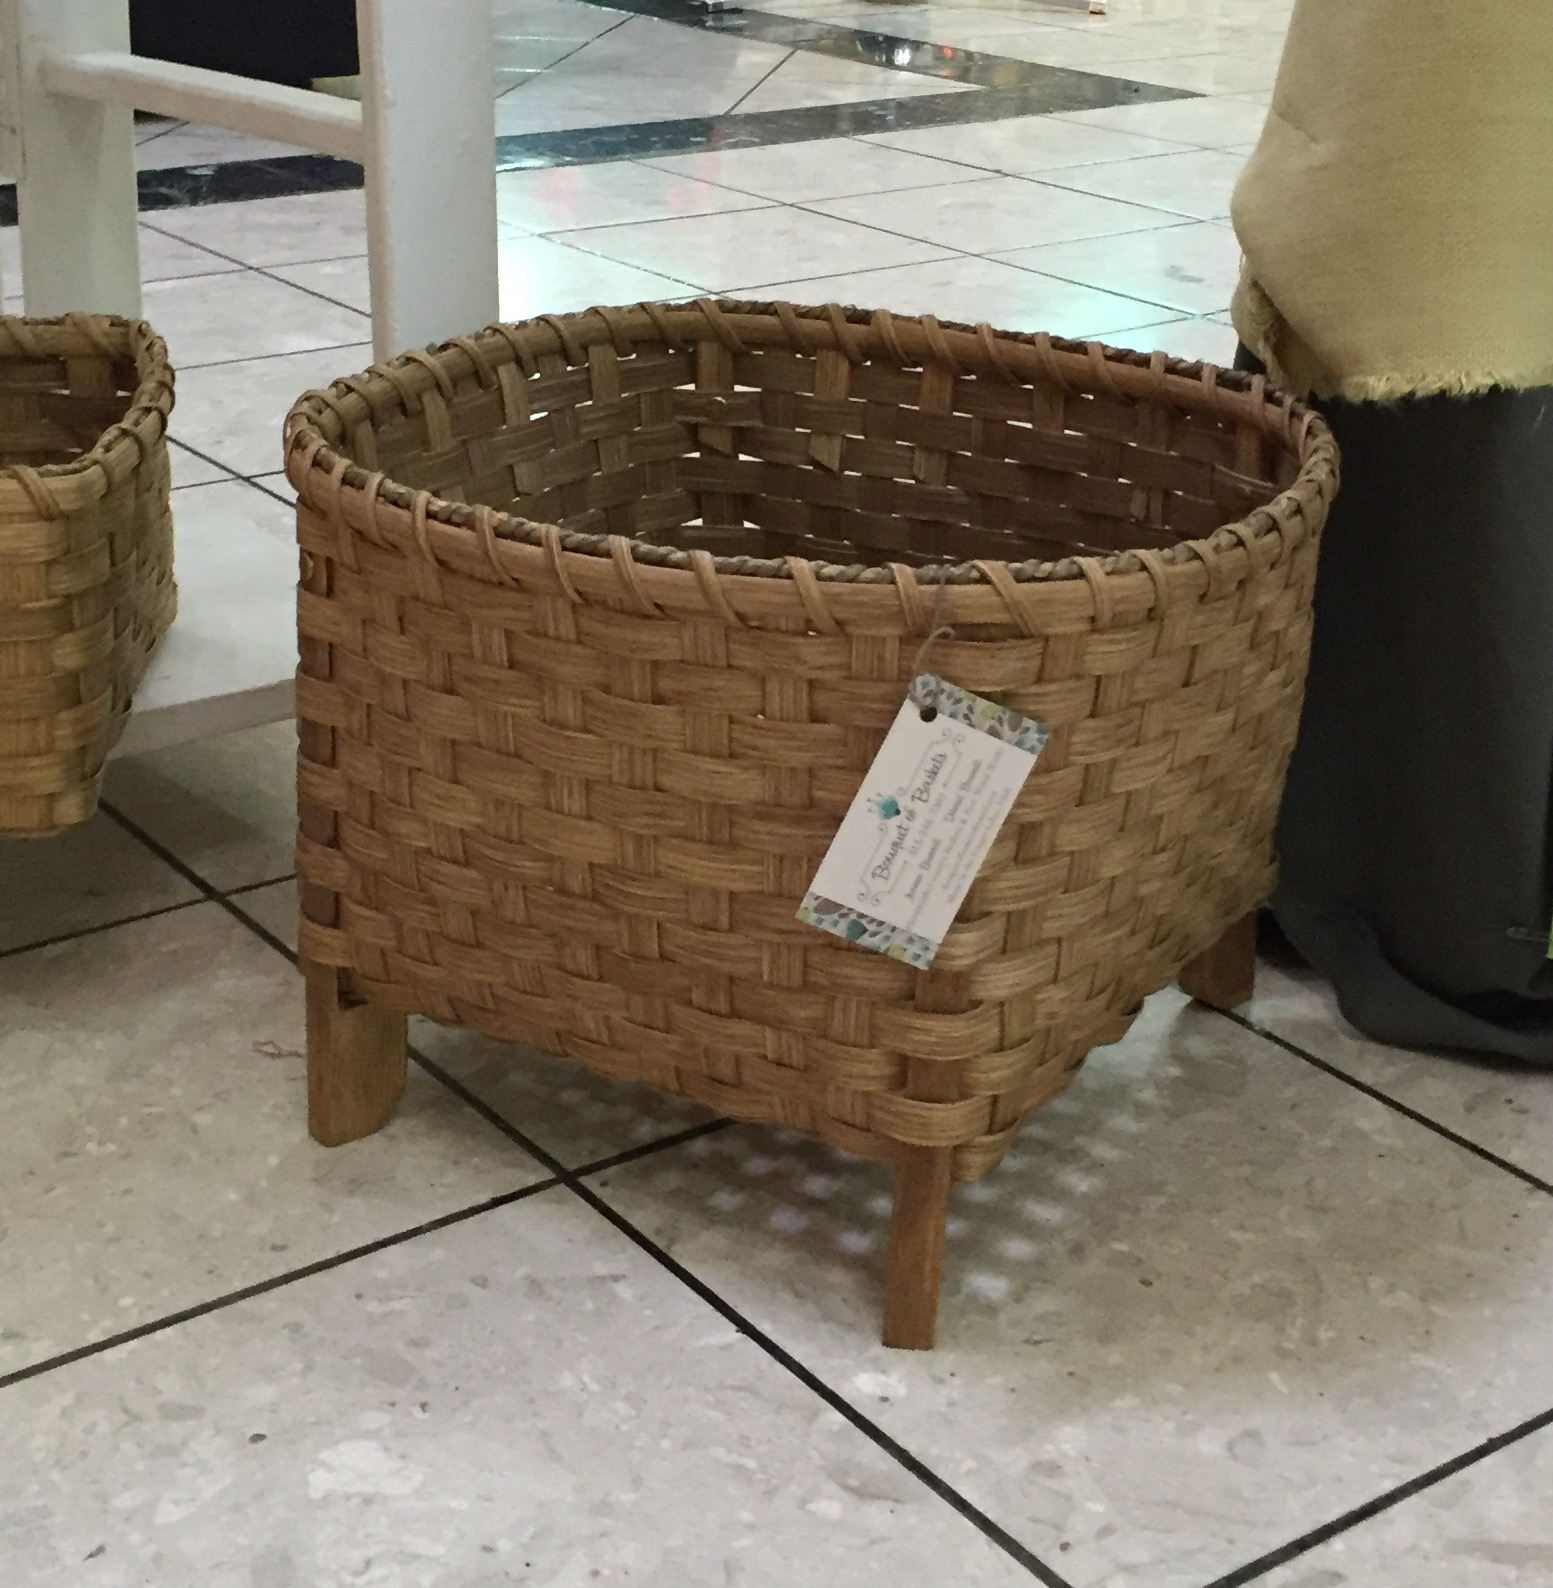 This Basket Was Originally Made For Drying Wool. The Legs Keep The Basket  Off The Ground, And The Bottom Of The Basket Is Woven With An Open Weave To  Allow ...